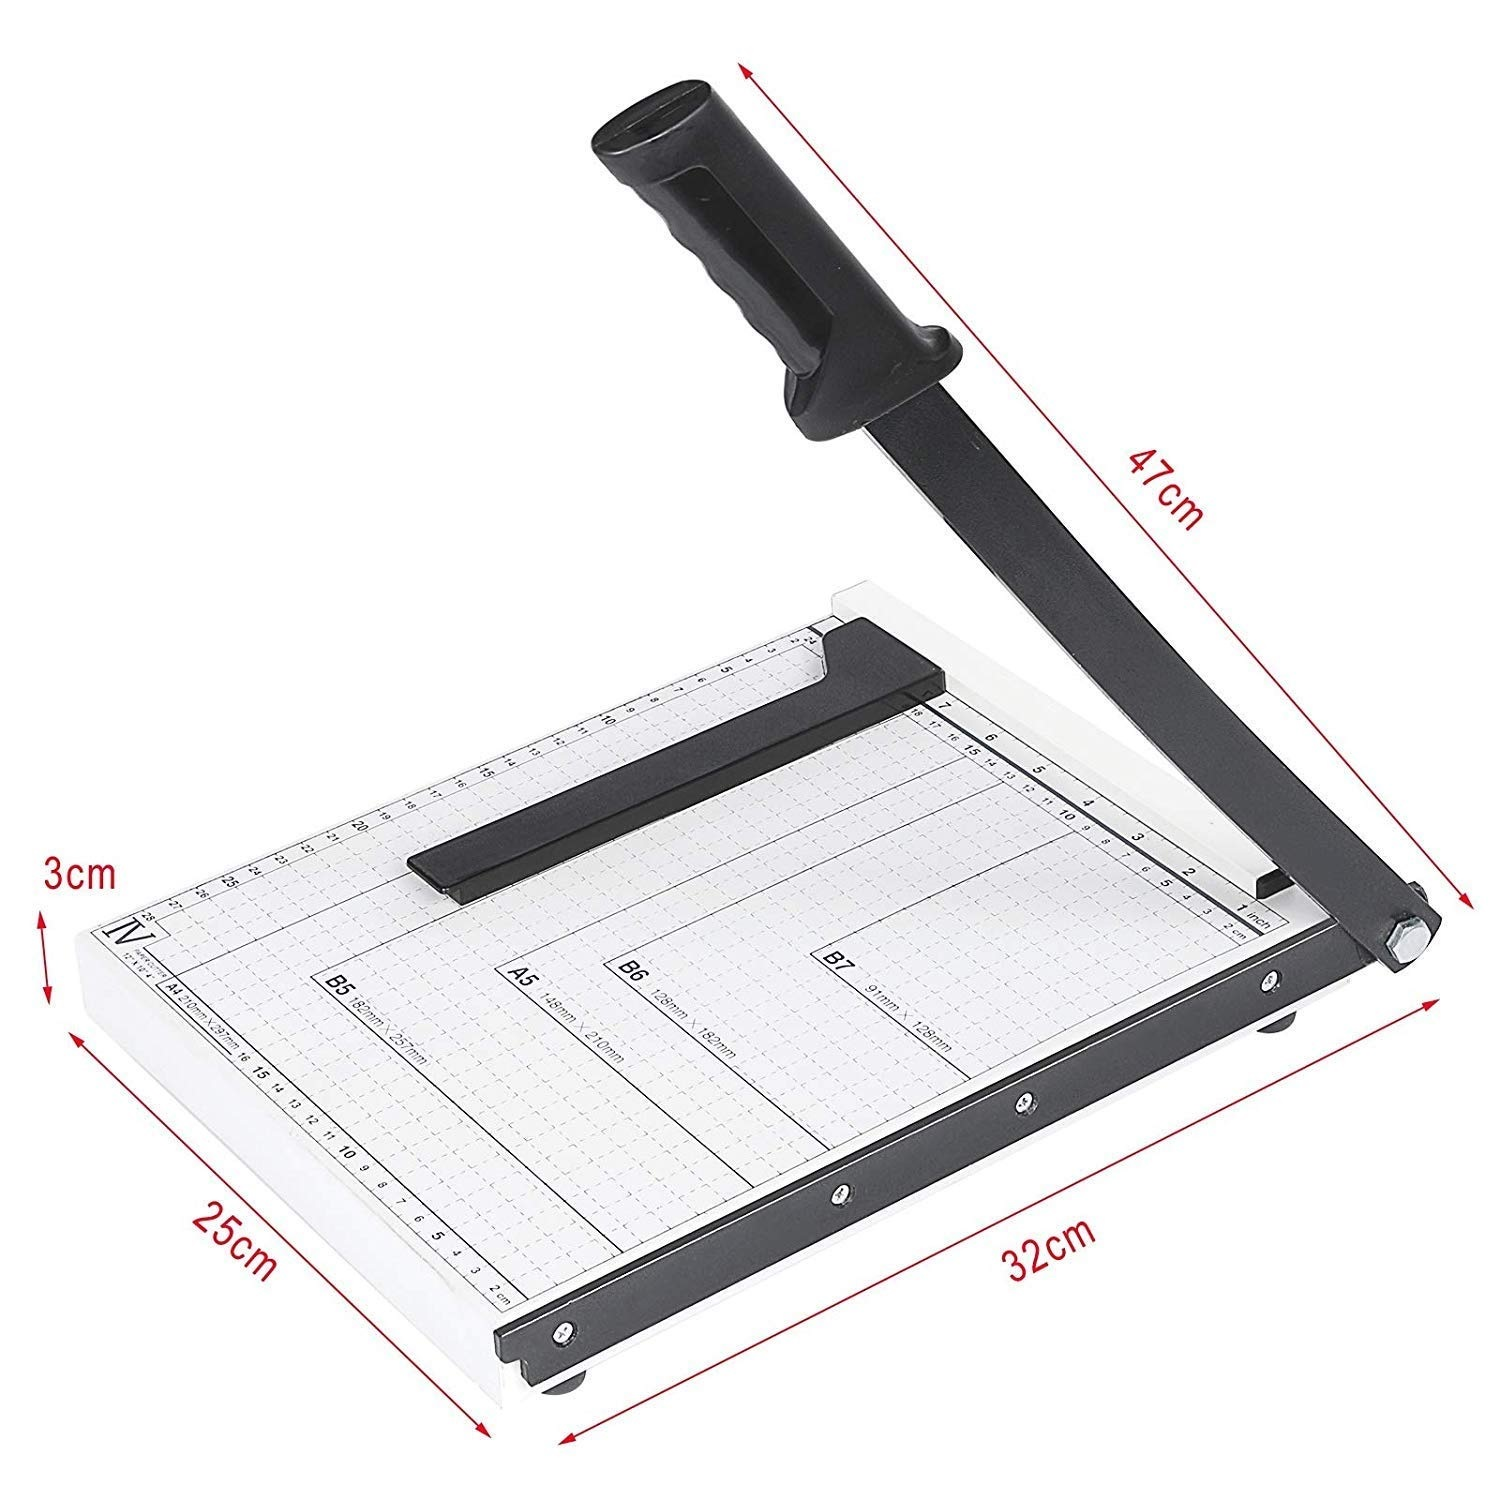 Ekavir Solid  Paper Cutter 12 Inch Support  Trimmer Cutters Metal Base A4/B5/B6/B7/A5 Post Card and Photo (L) Size Paper Cutting